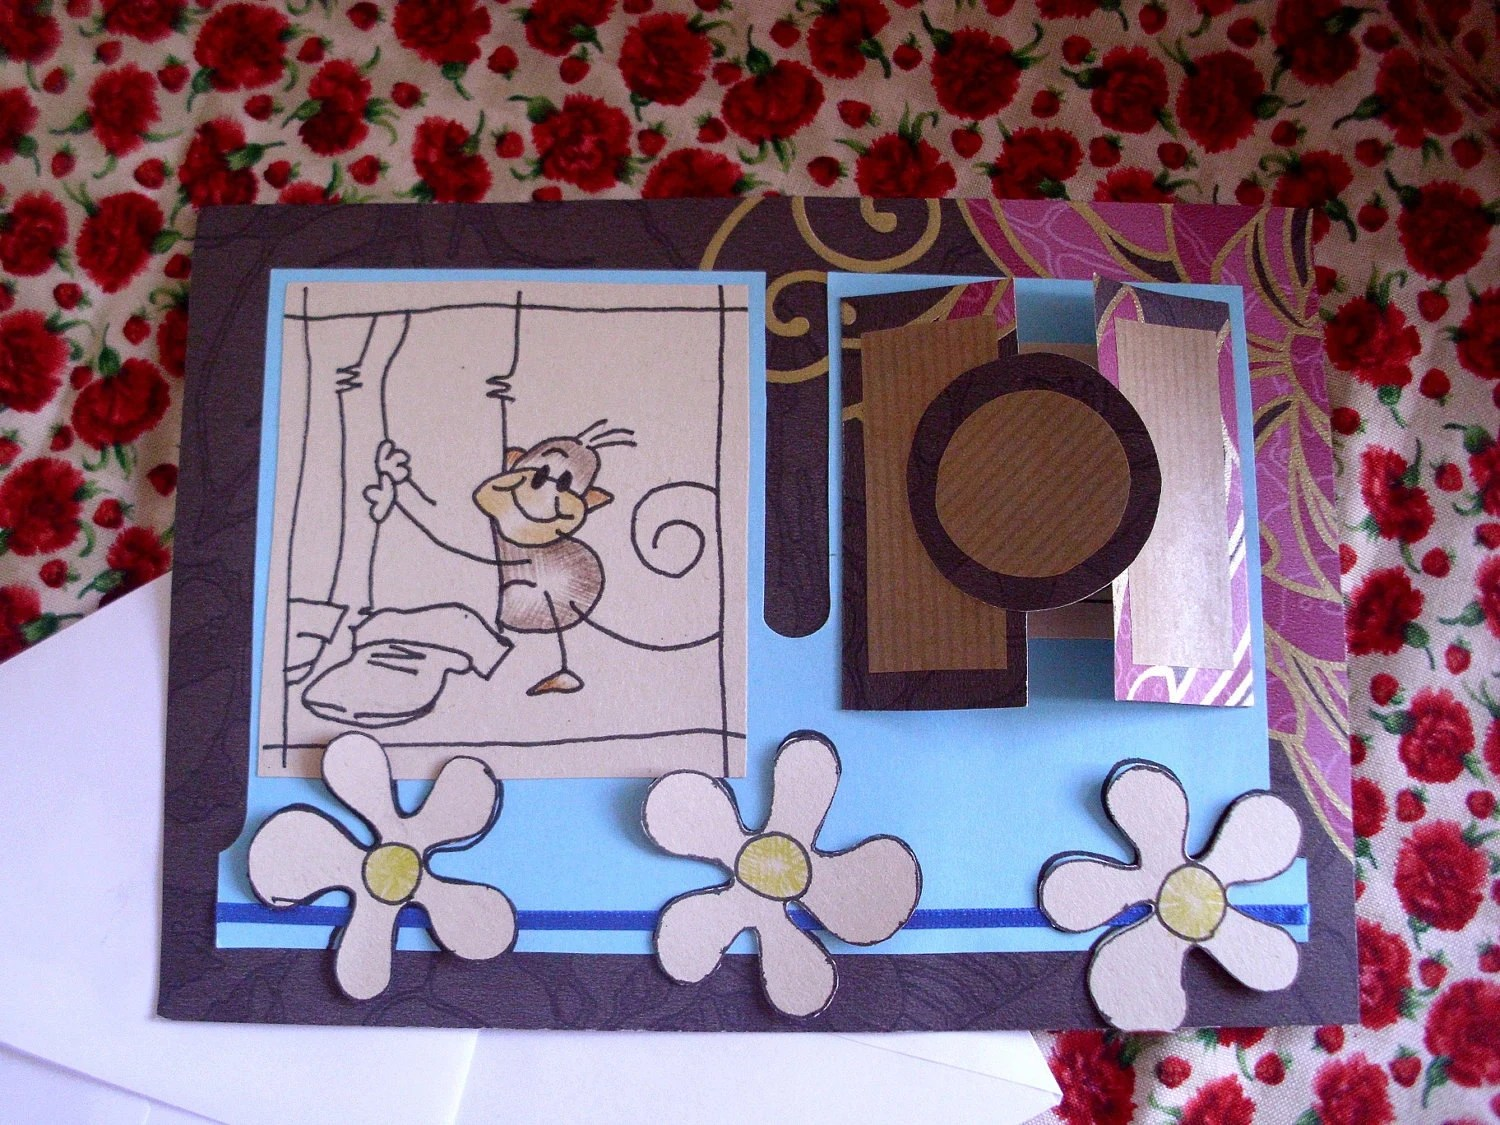 Hang on to You - Little Monkey Fathers Day / Birthday Card (hand drawn and handmade)